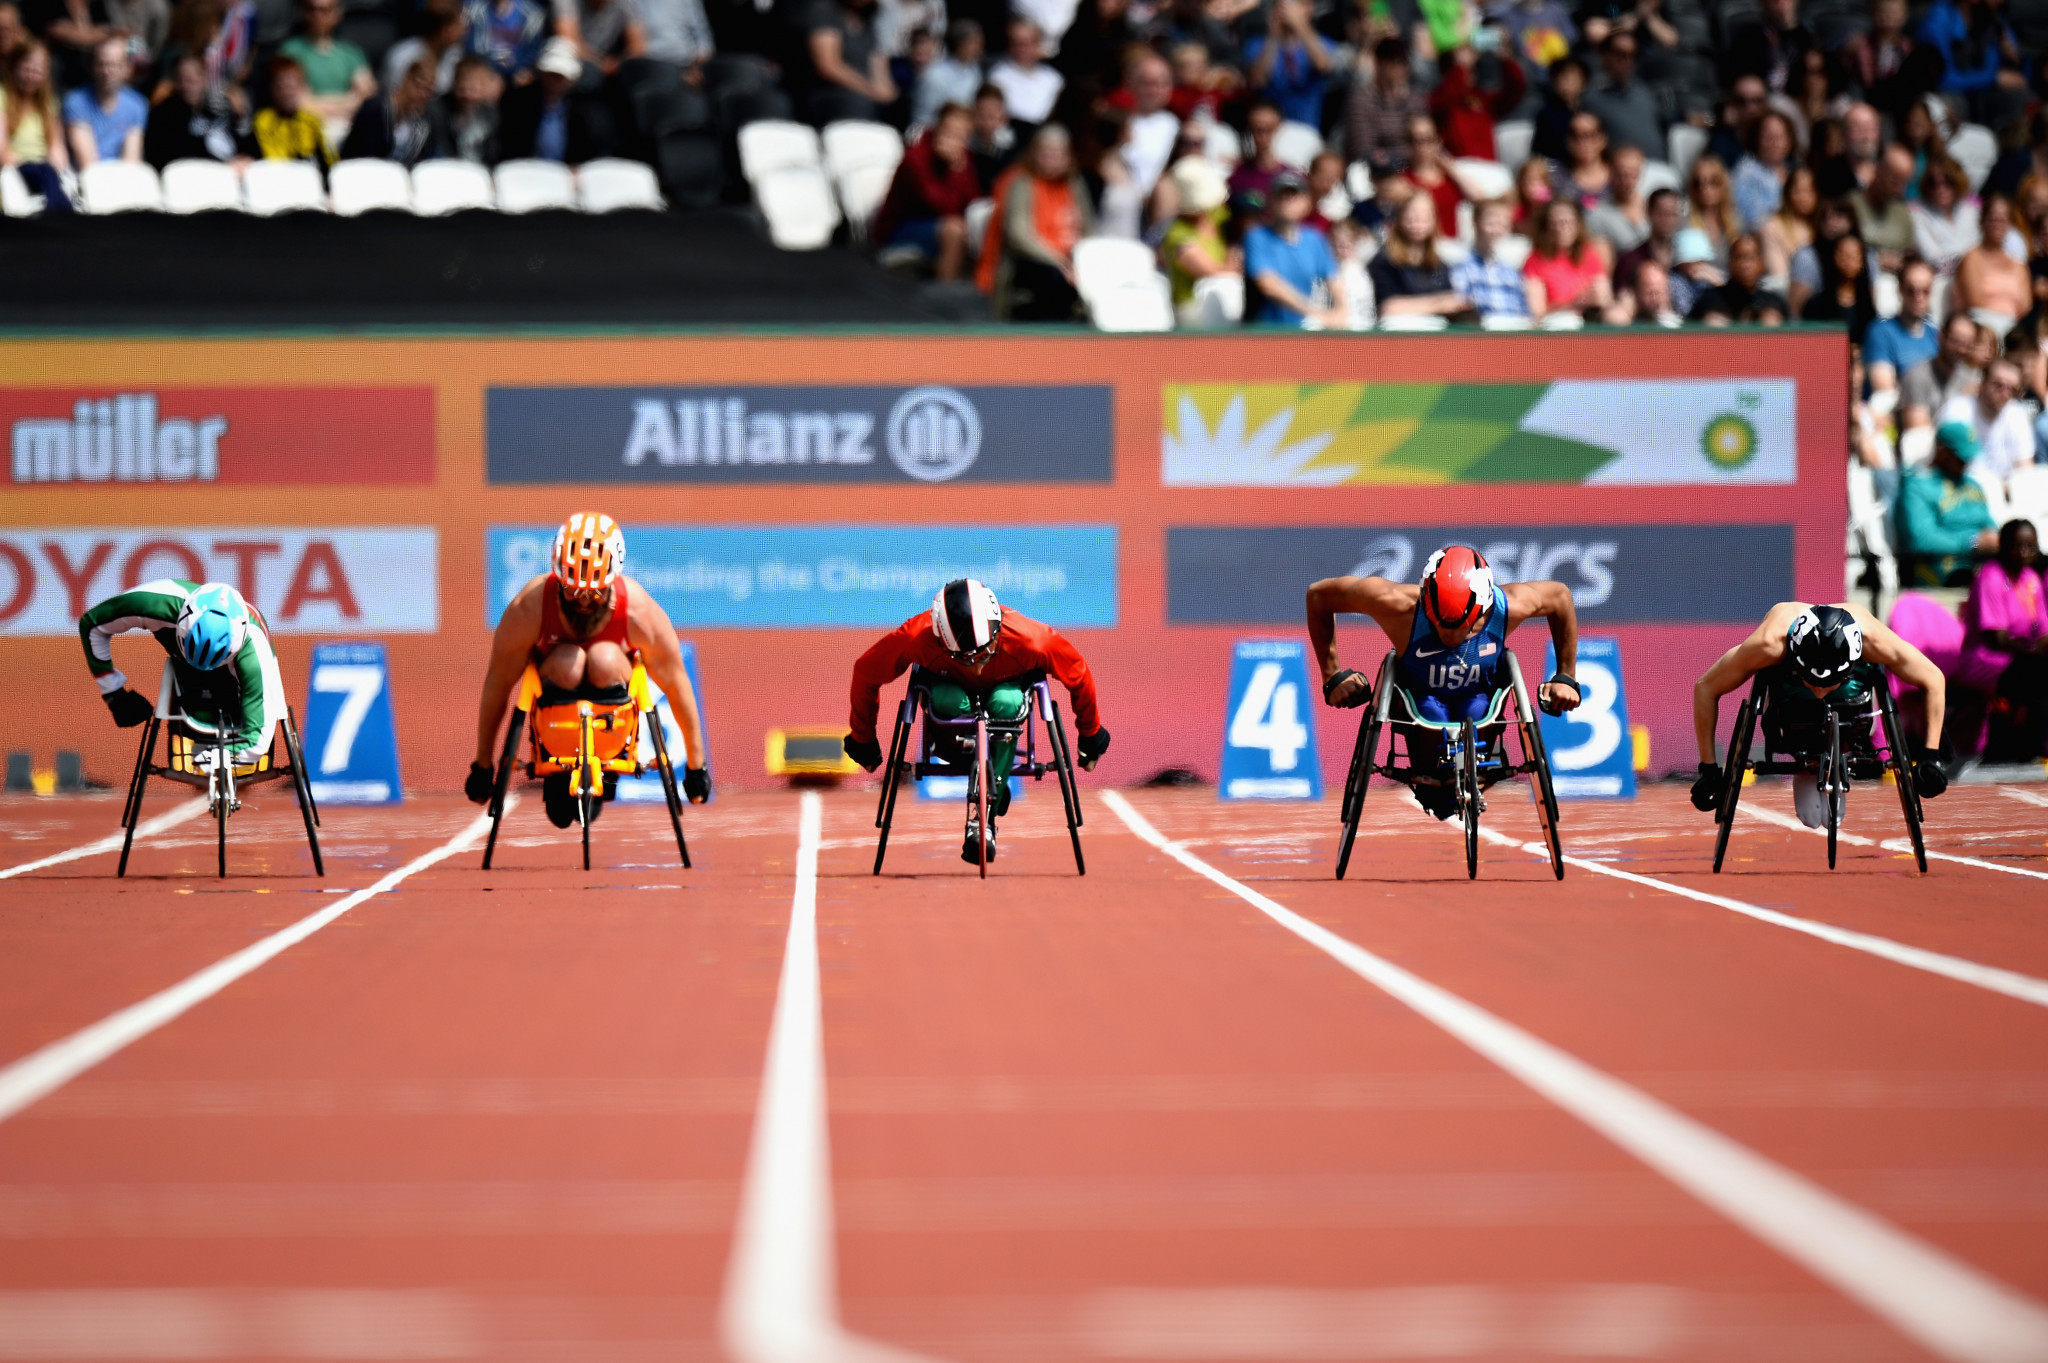 More than 300,000 tickets were sold for the 2017 IPC World Para Athletics Championships in London but the momentum has been lost by UK Athletics since ©Getty Images